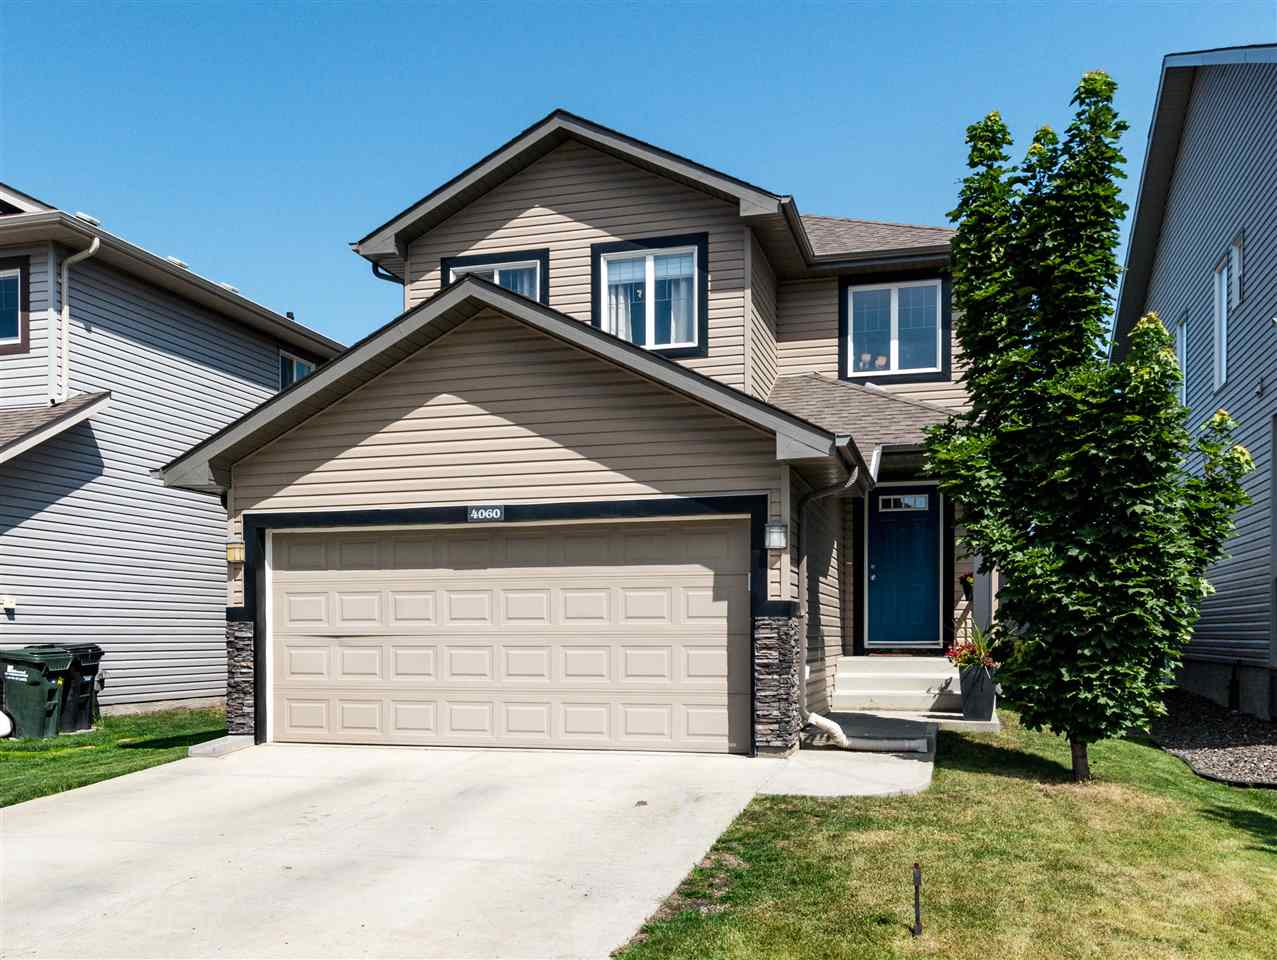 4060 Summerland Drive, 3 bed, 3 bath, at $419,900